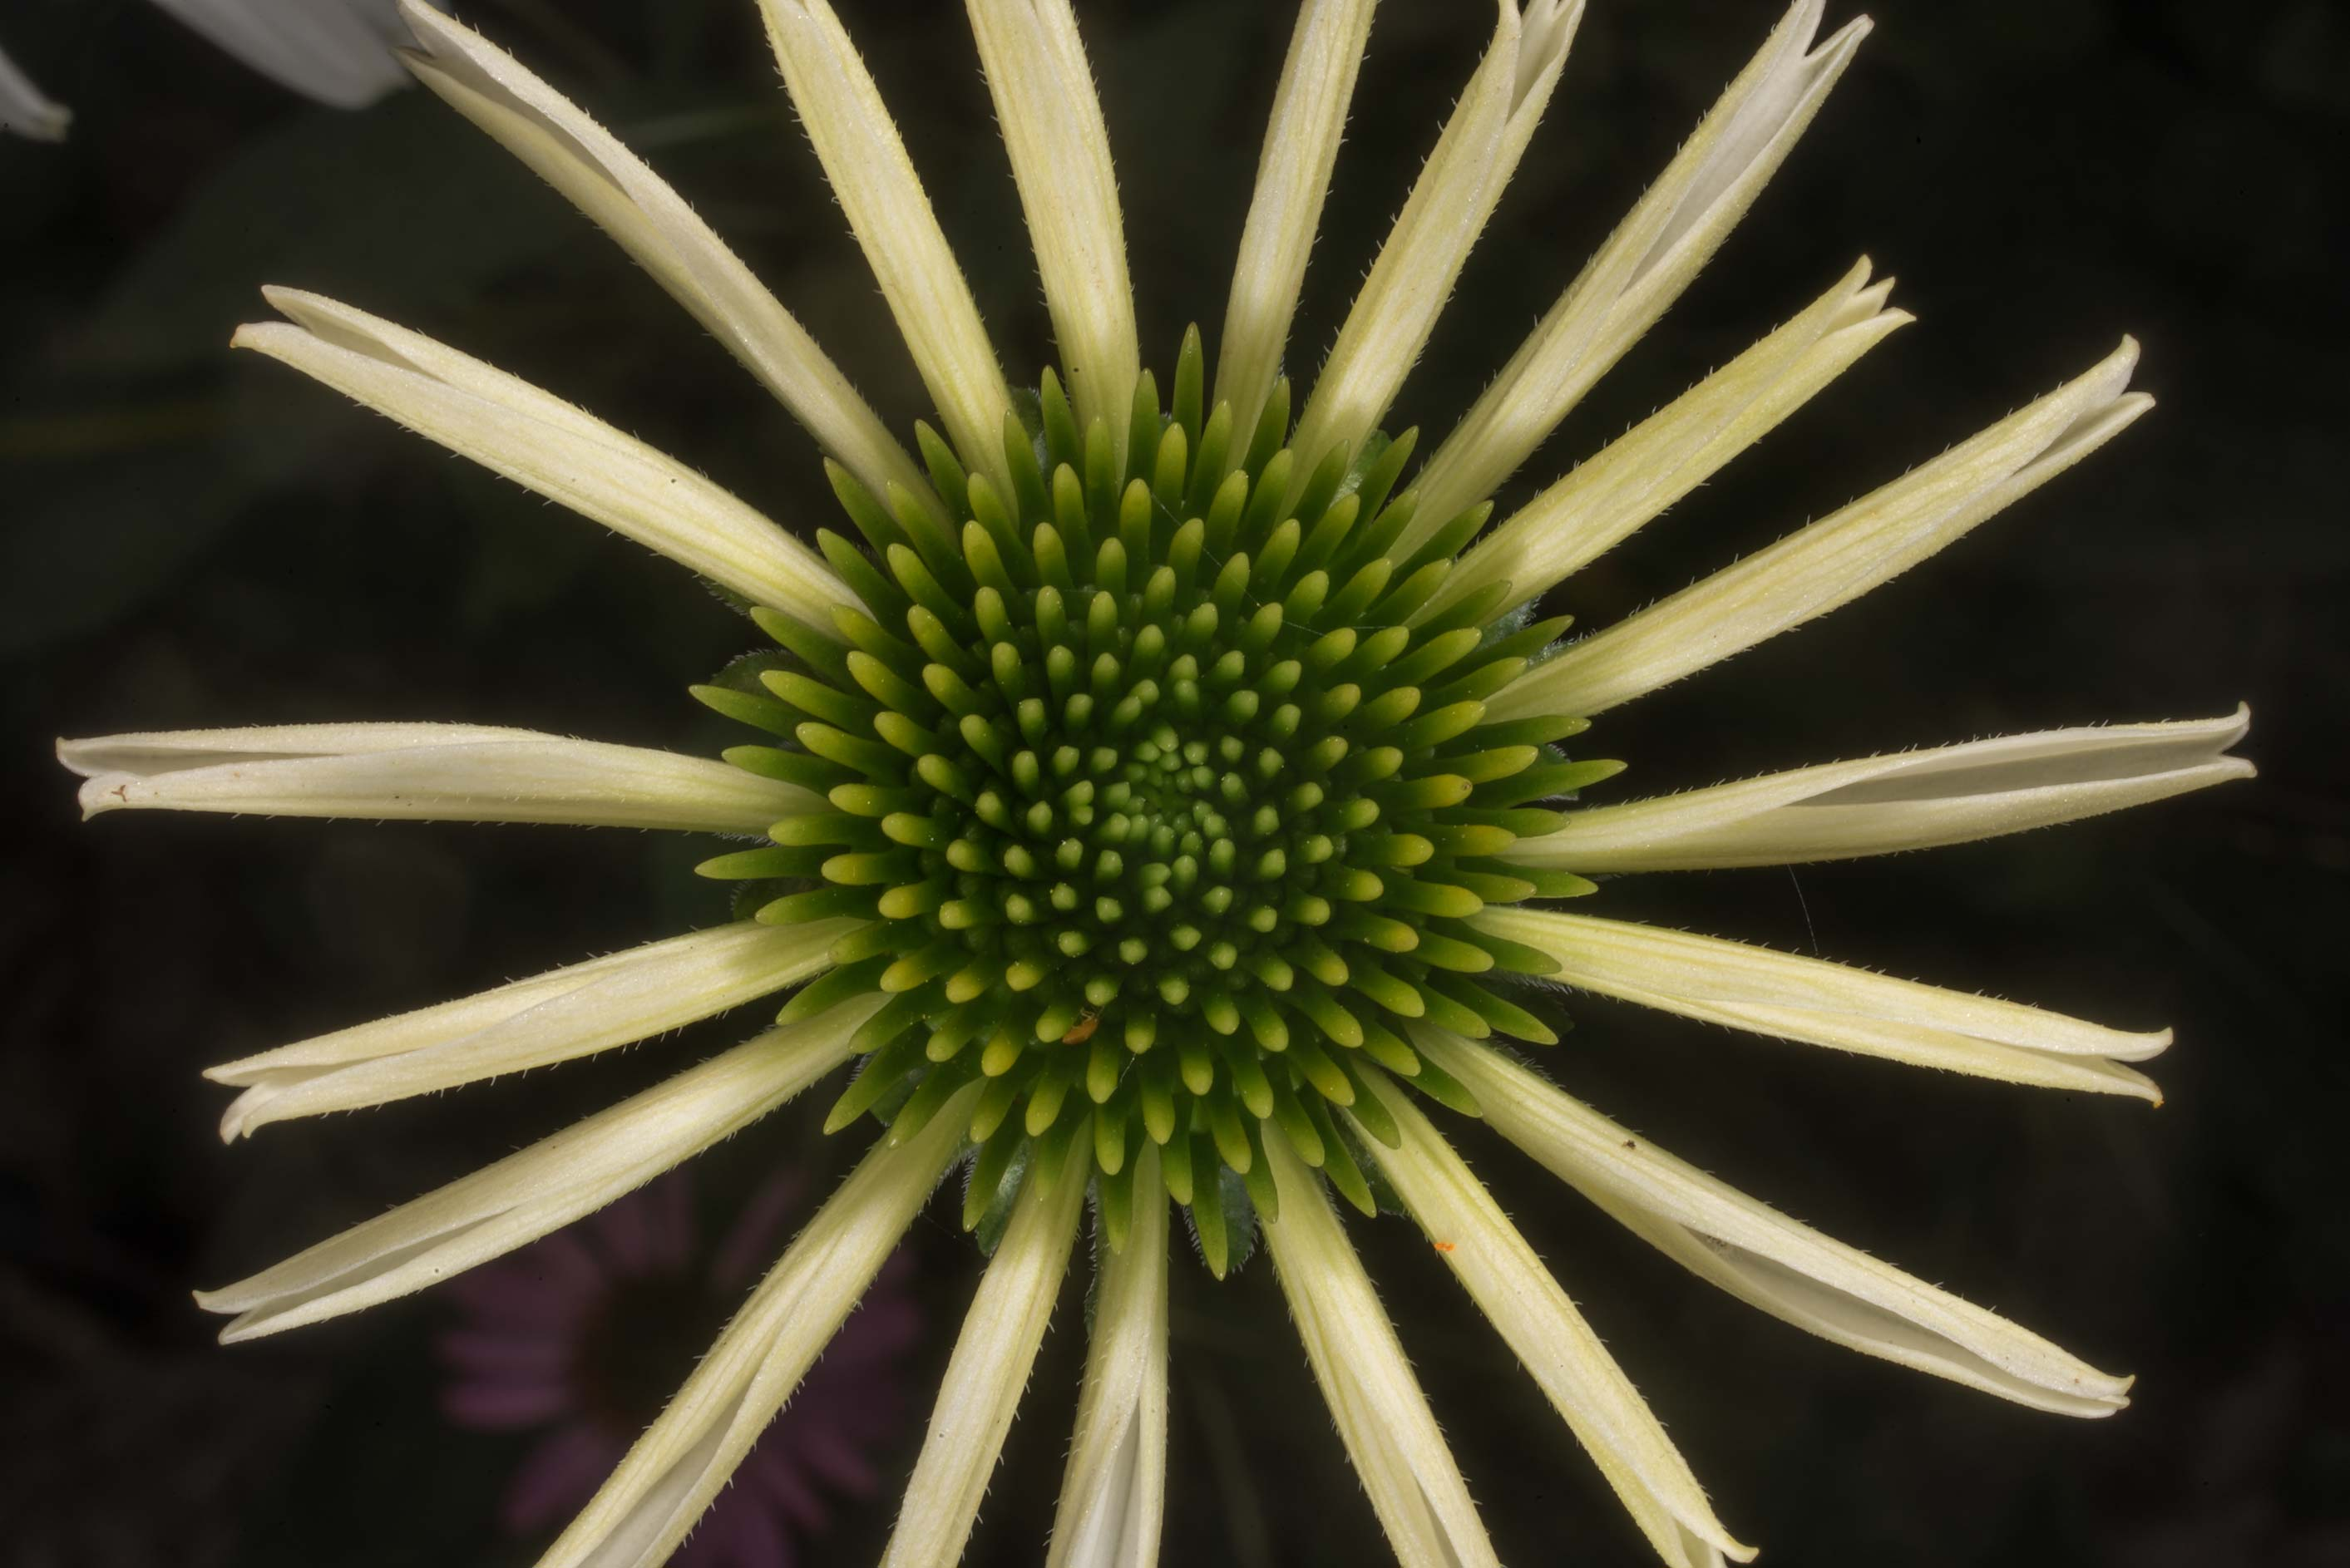 Immature yellow coneflower in Antique Rose Emporium. Independence, Texas